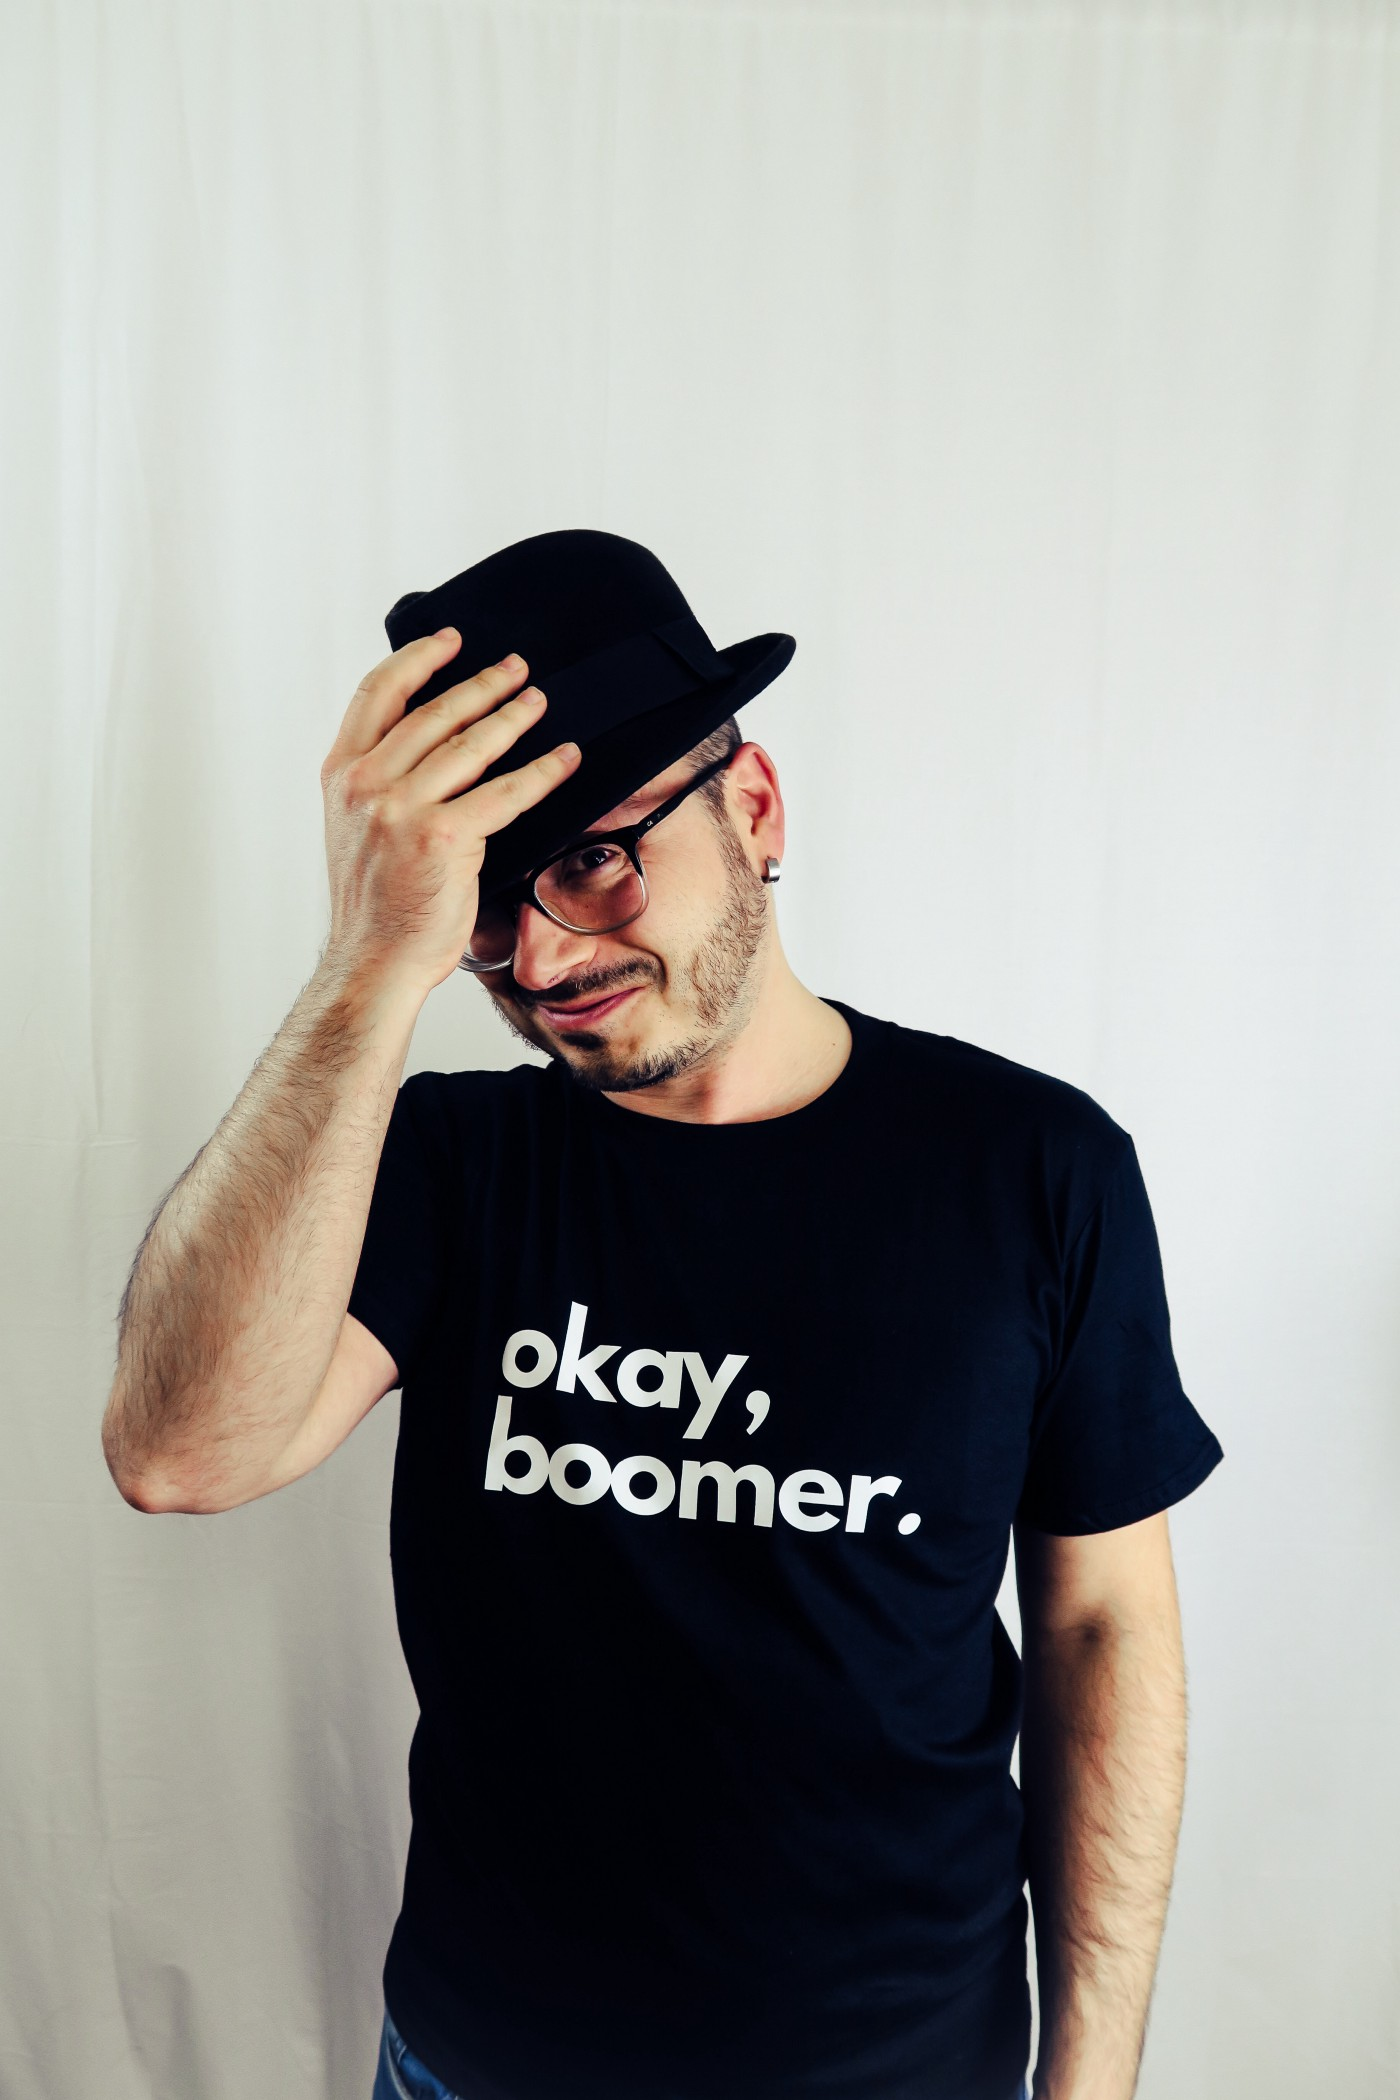 Man wearing okay, boomer t-shirt